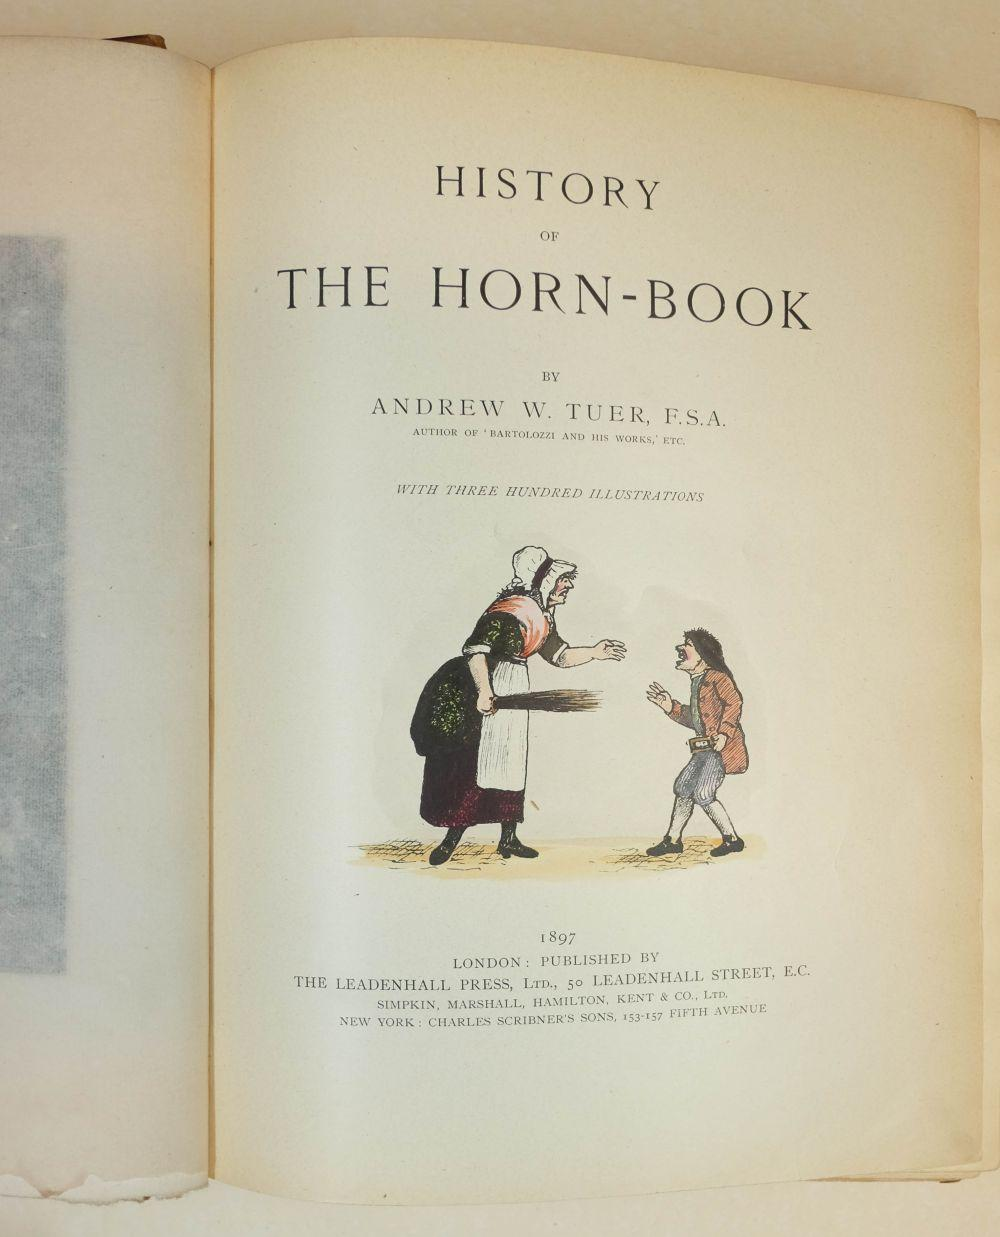 Tuer (Andrew W.). History of the Horn-Book, 1st edition, 1896